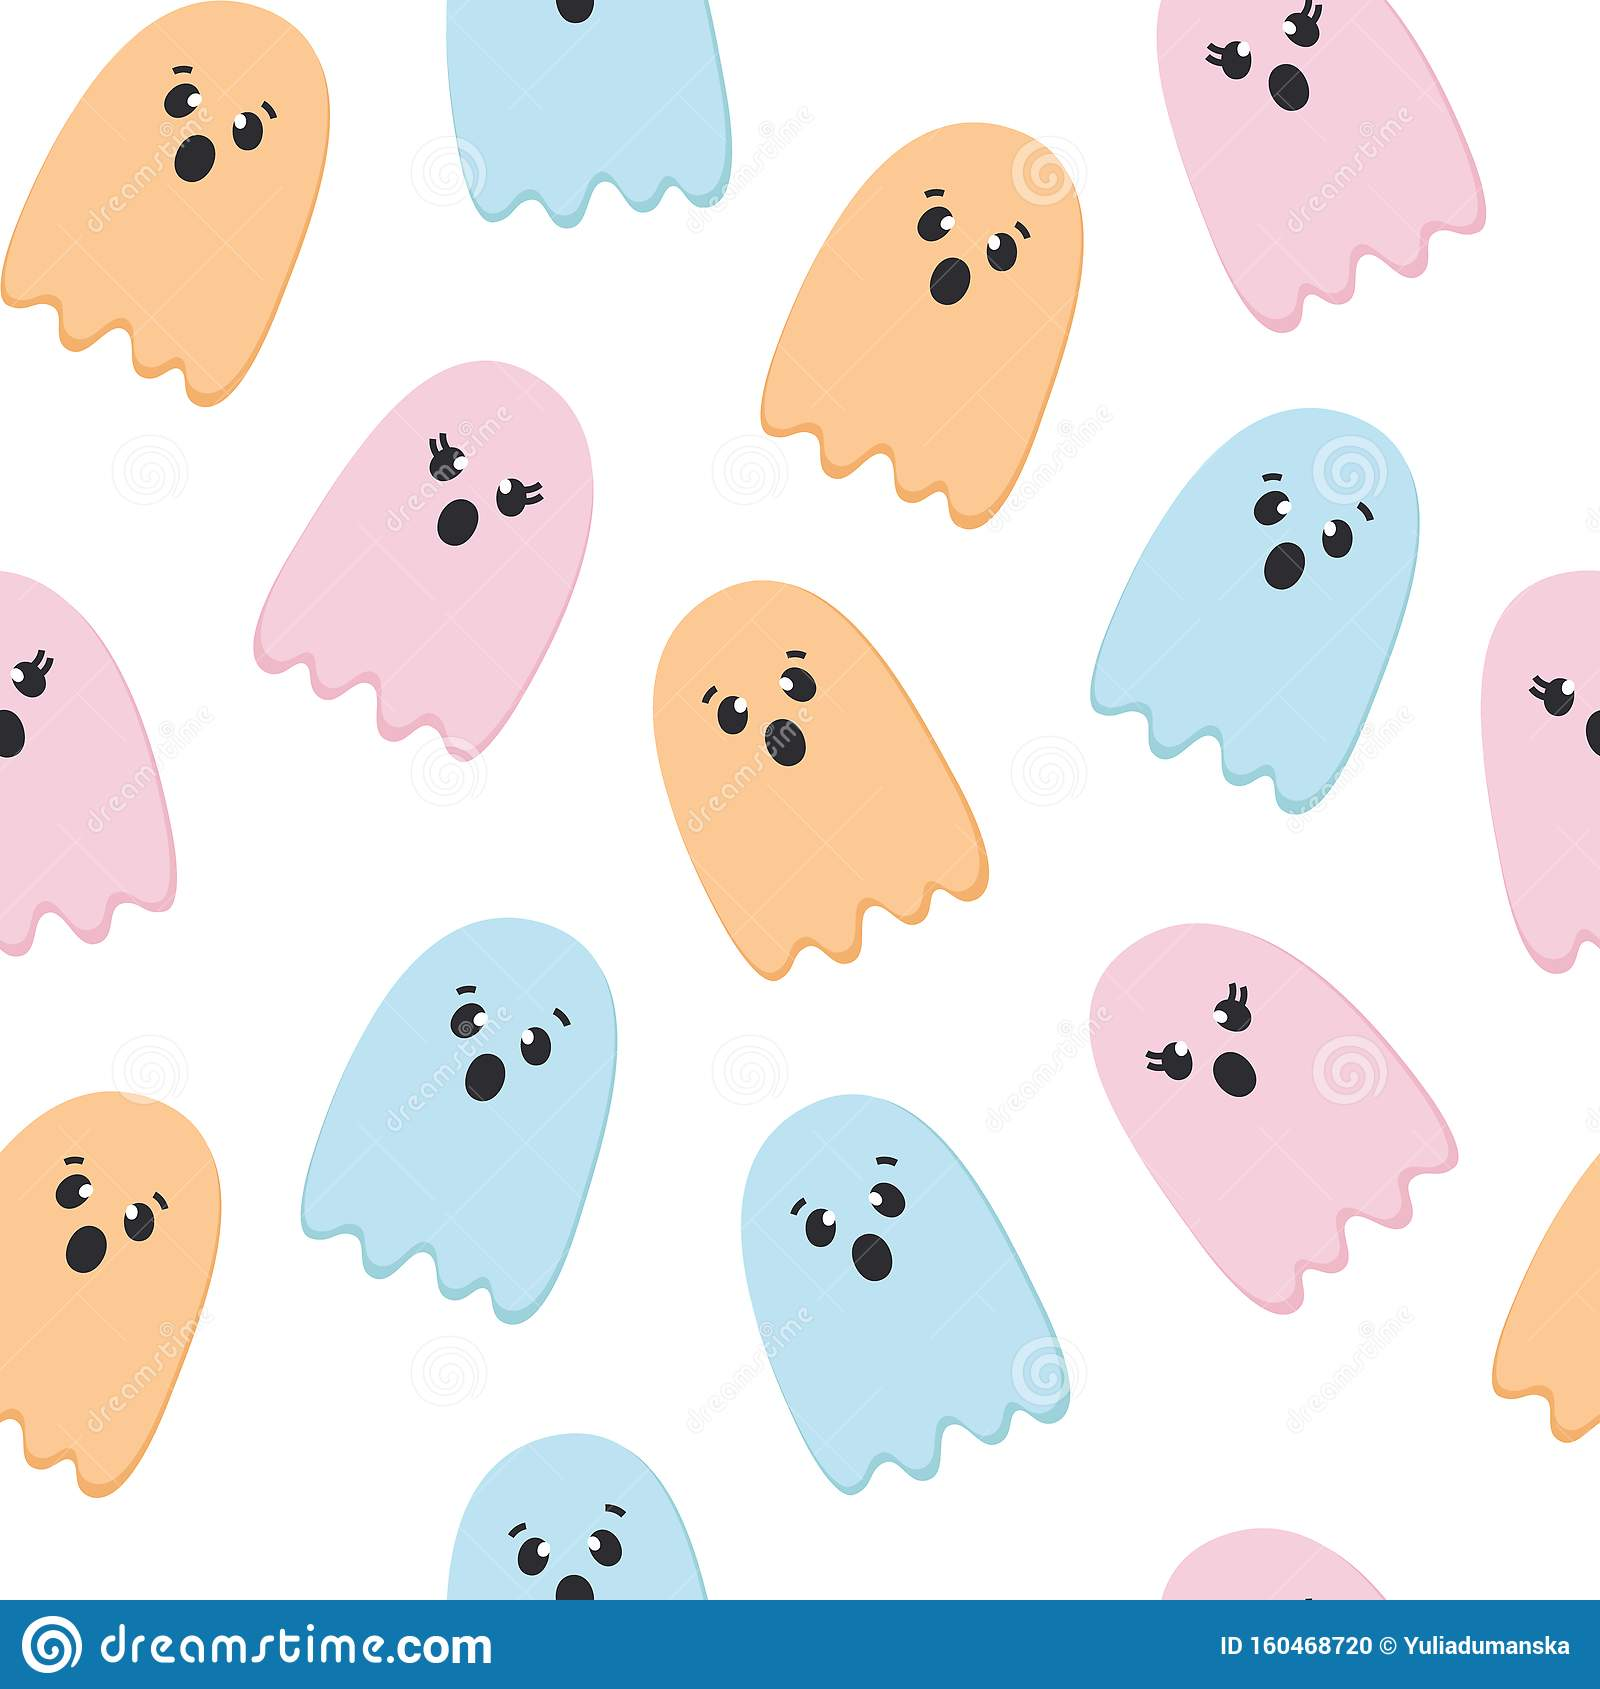 Halloween Seamless Pattern Of Flying Ghosts Cute Nursery Room Wallpaper Kids Background Card Pastel Colors Scared Stock Vector Illustration Of Ghostly Smile 160468720